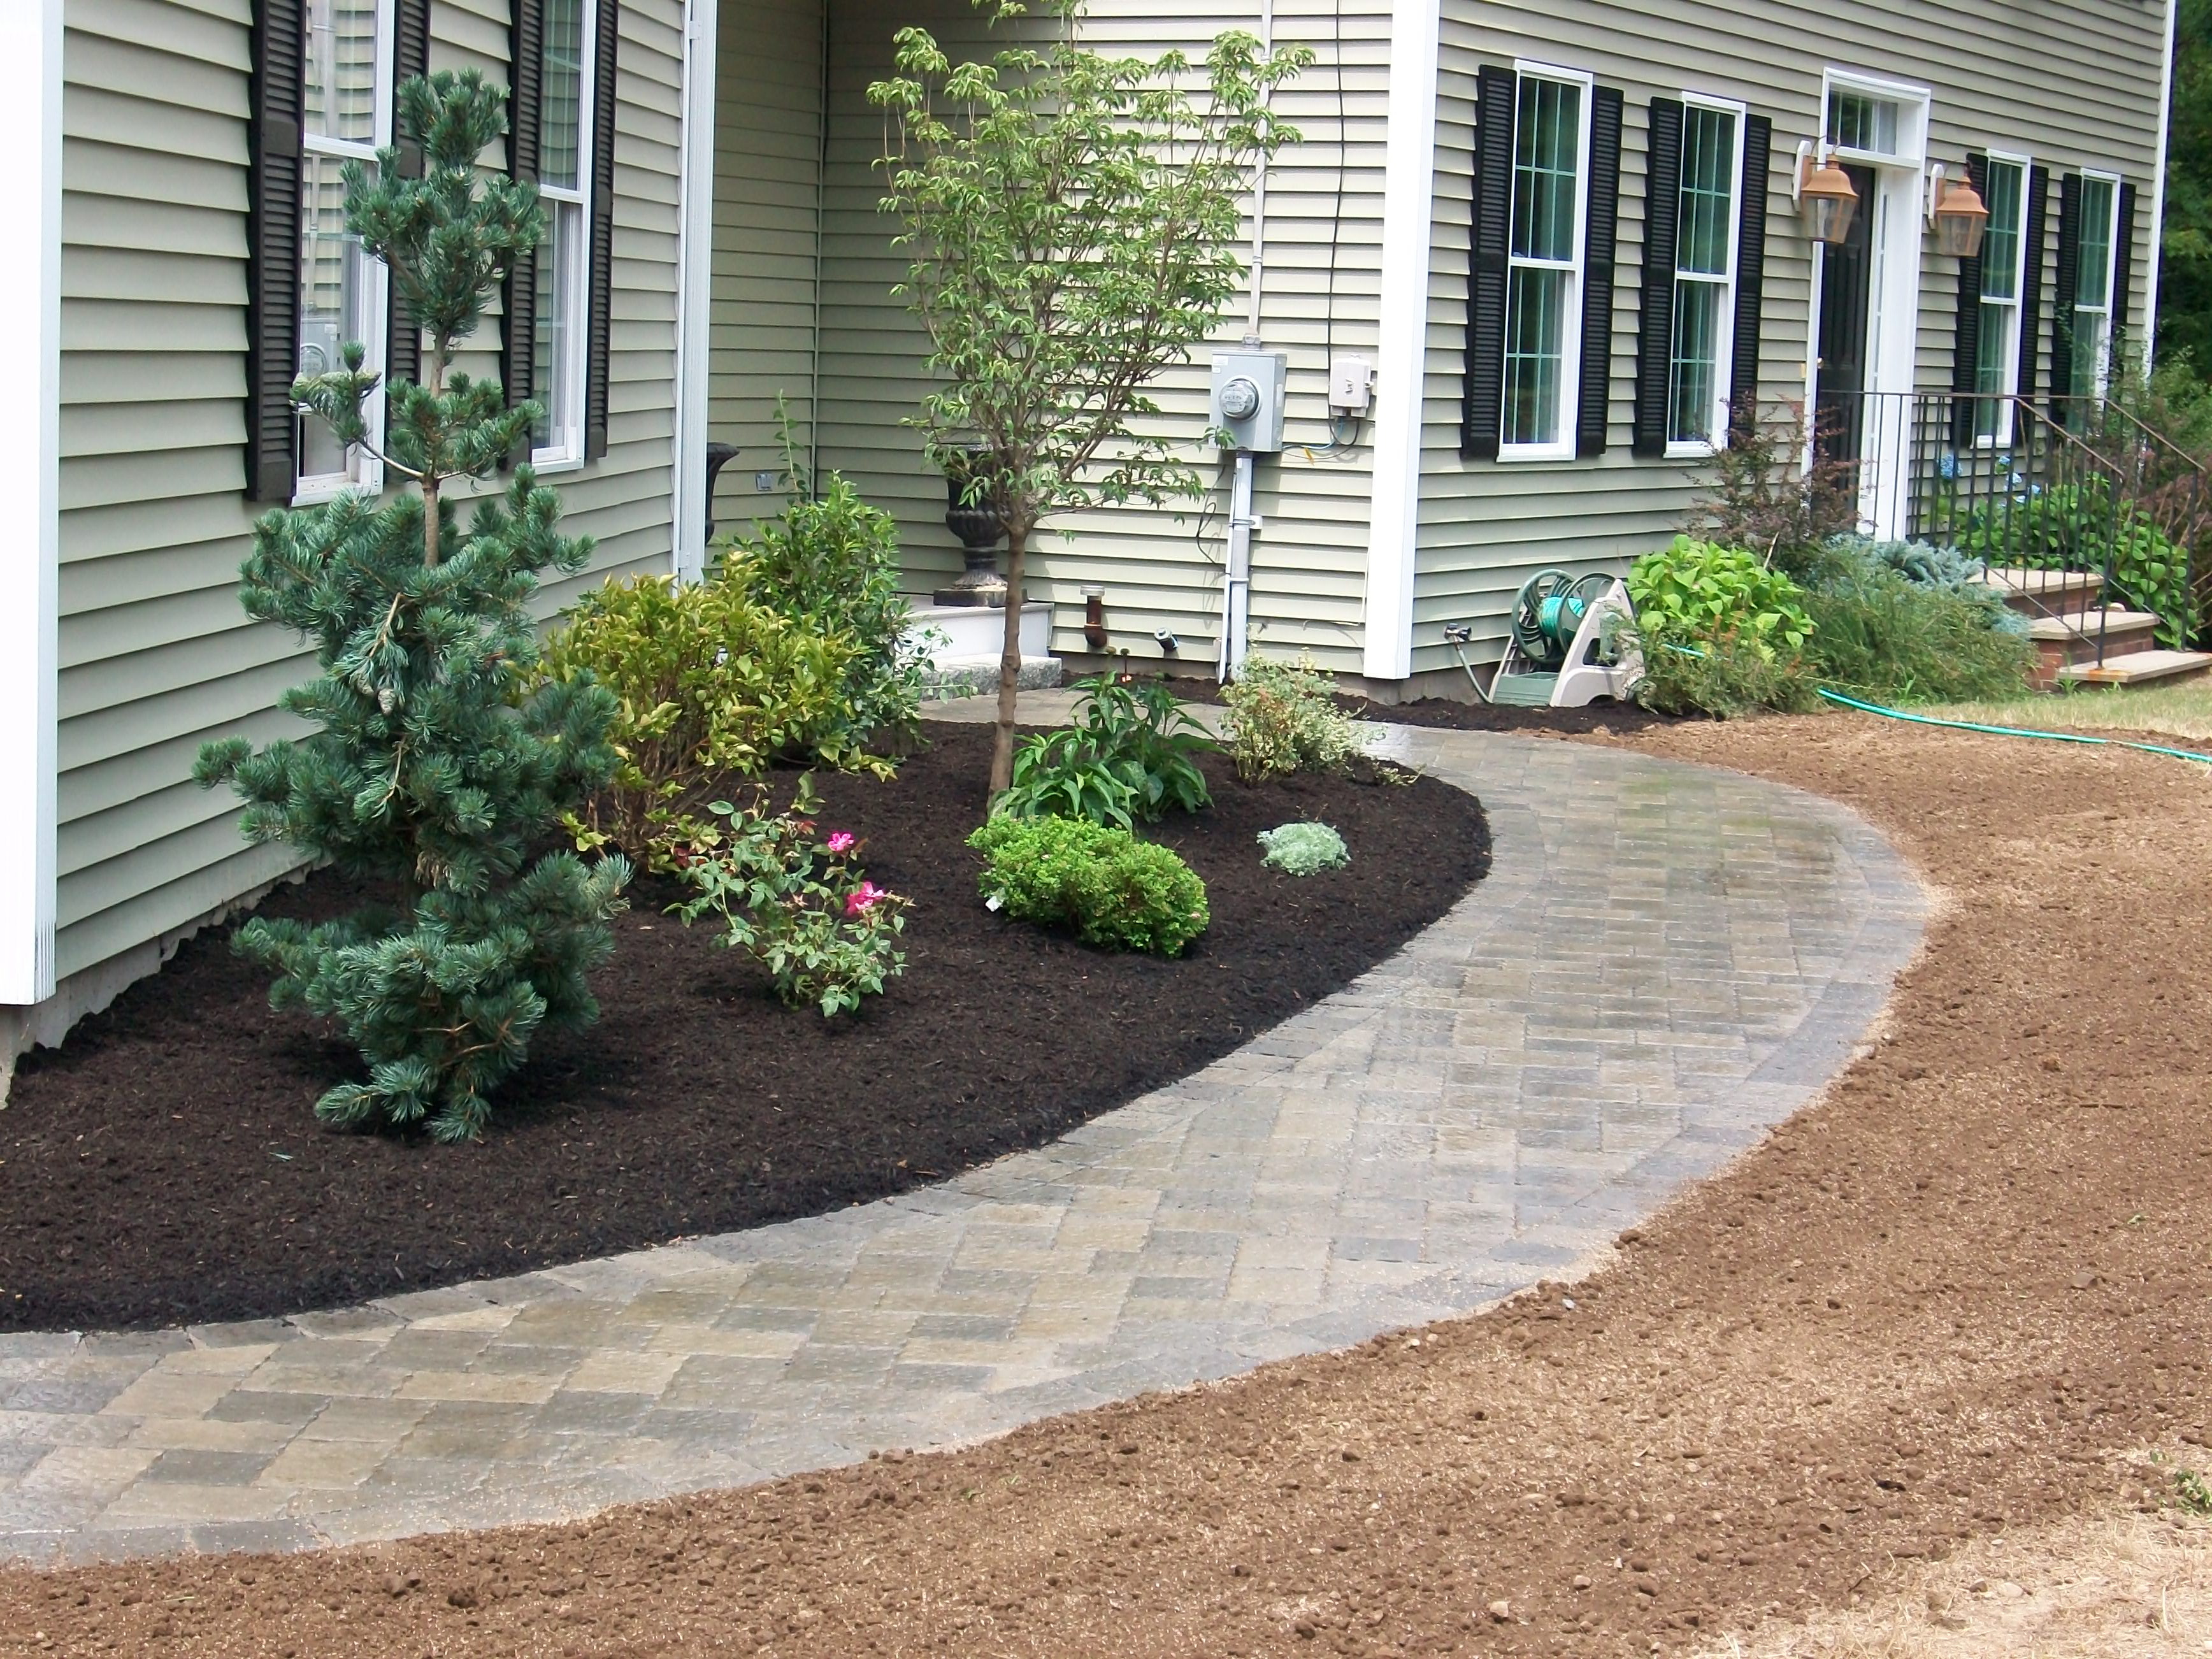 Image gallery walkway plants for Plants for walkway landscaping ideas